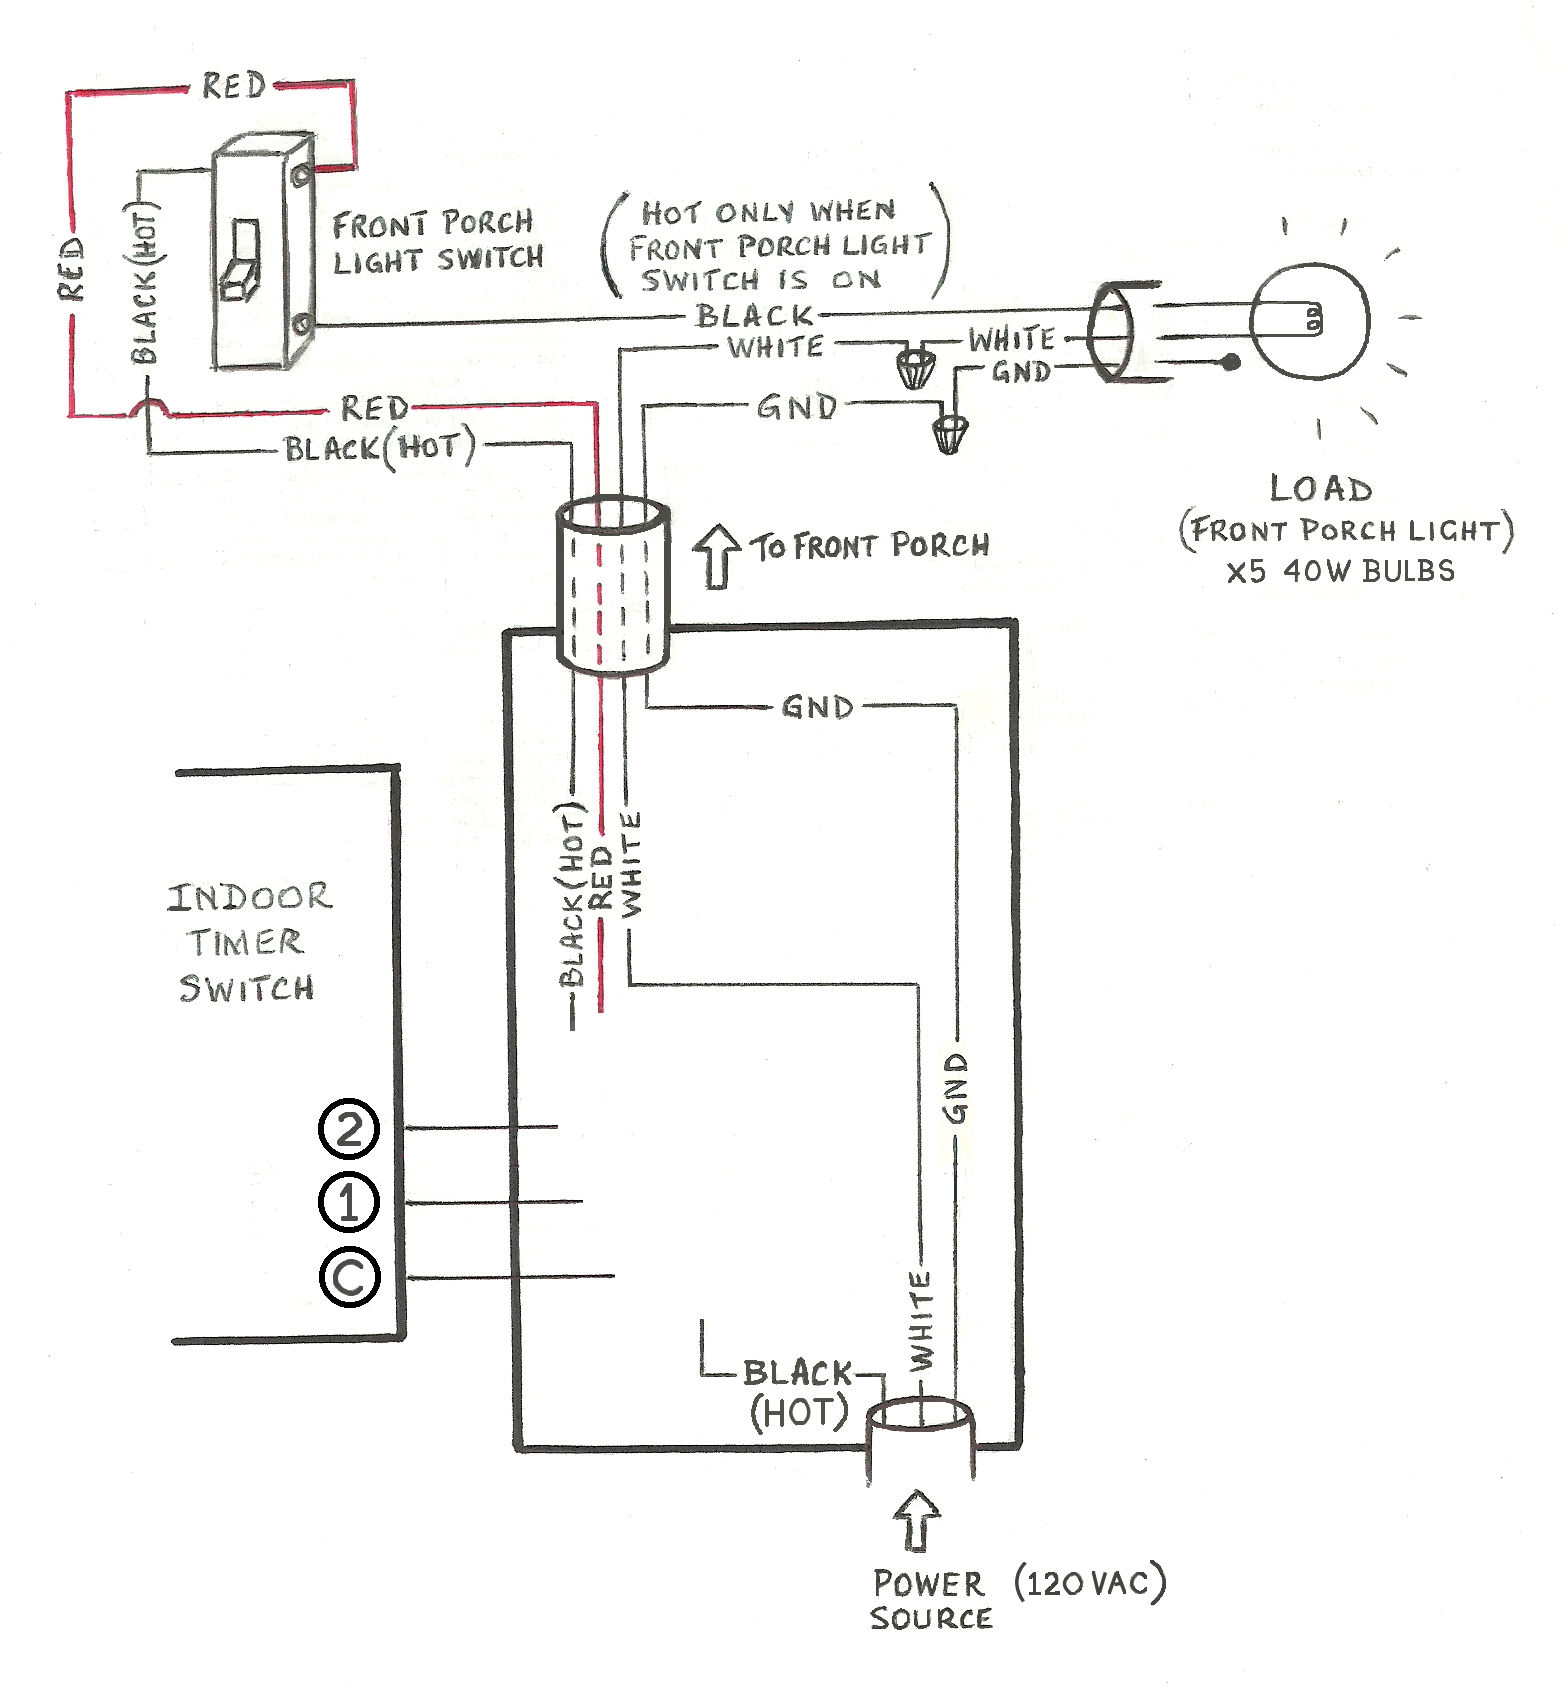 hight resolution of wiring diagram from schematic to light switch wiring diagrams scematic 3 way switch wiring diagram